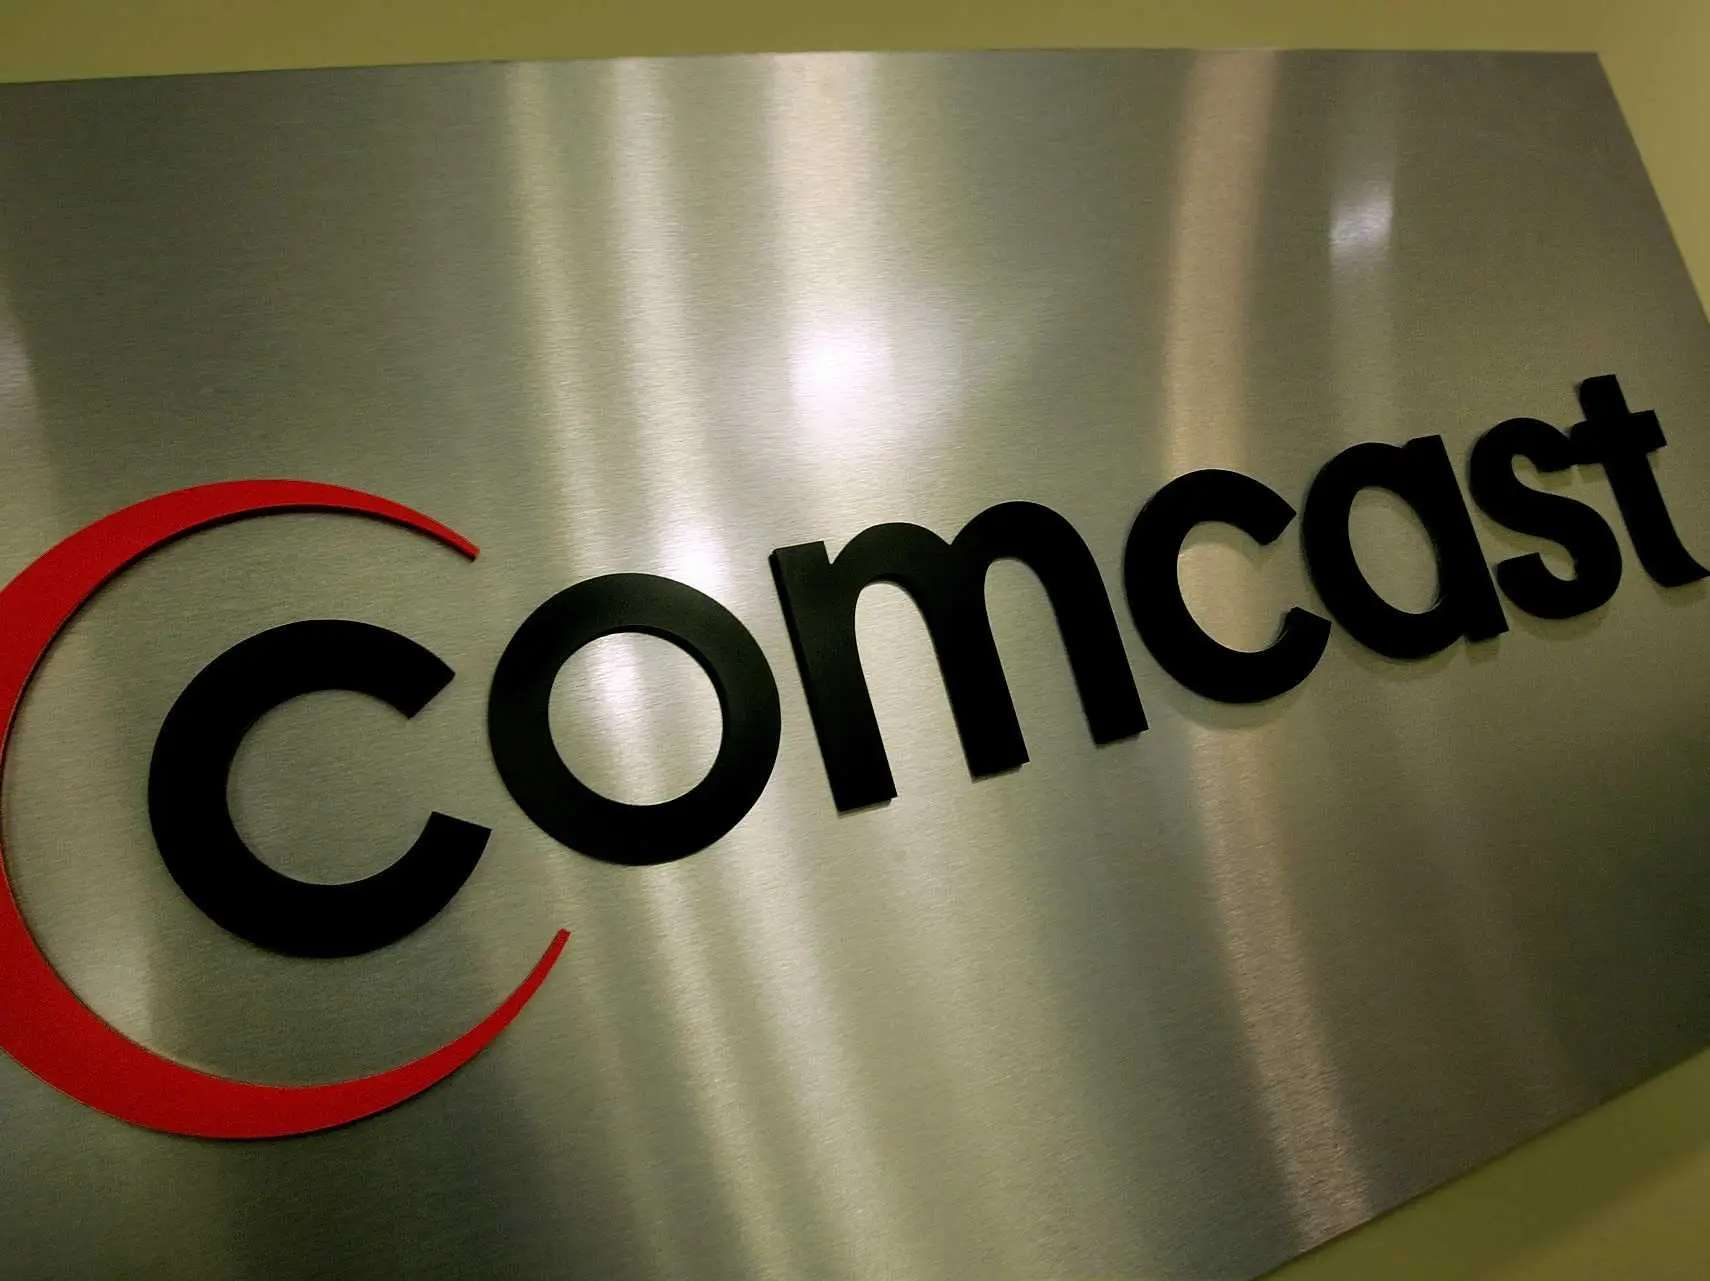 12. Comcast is held by 20 funds